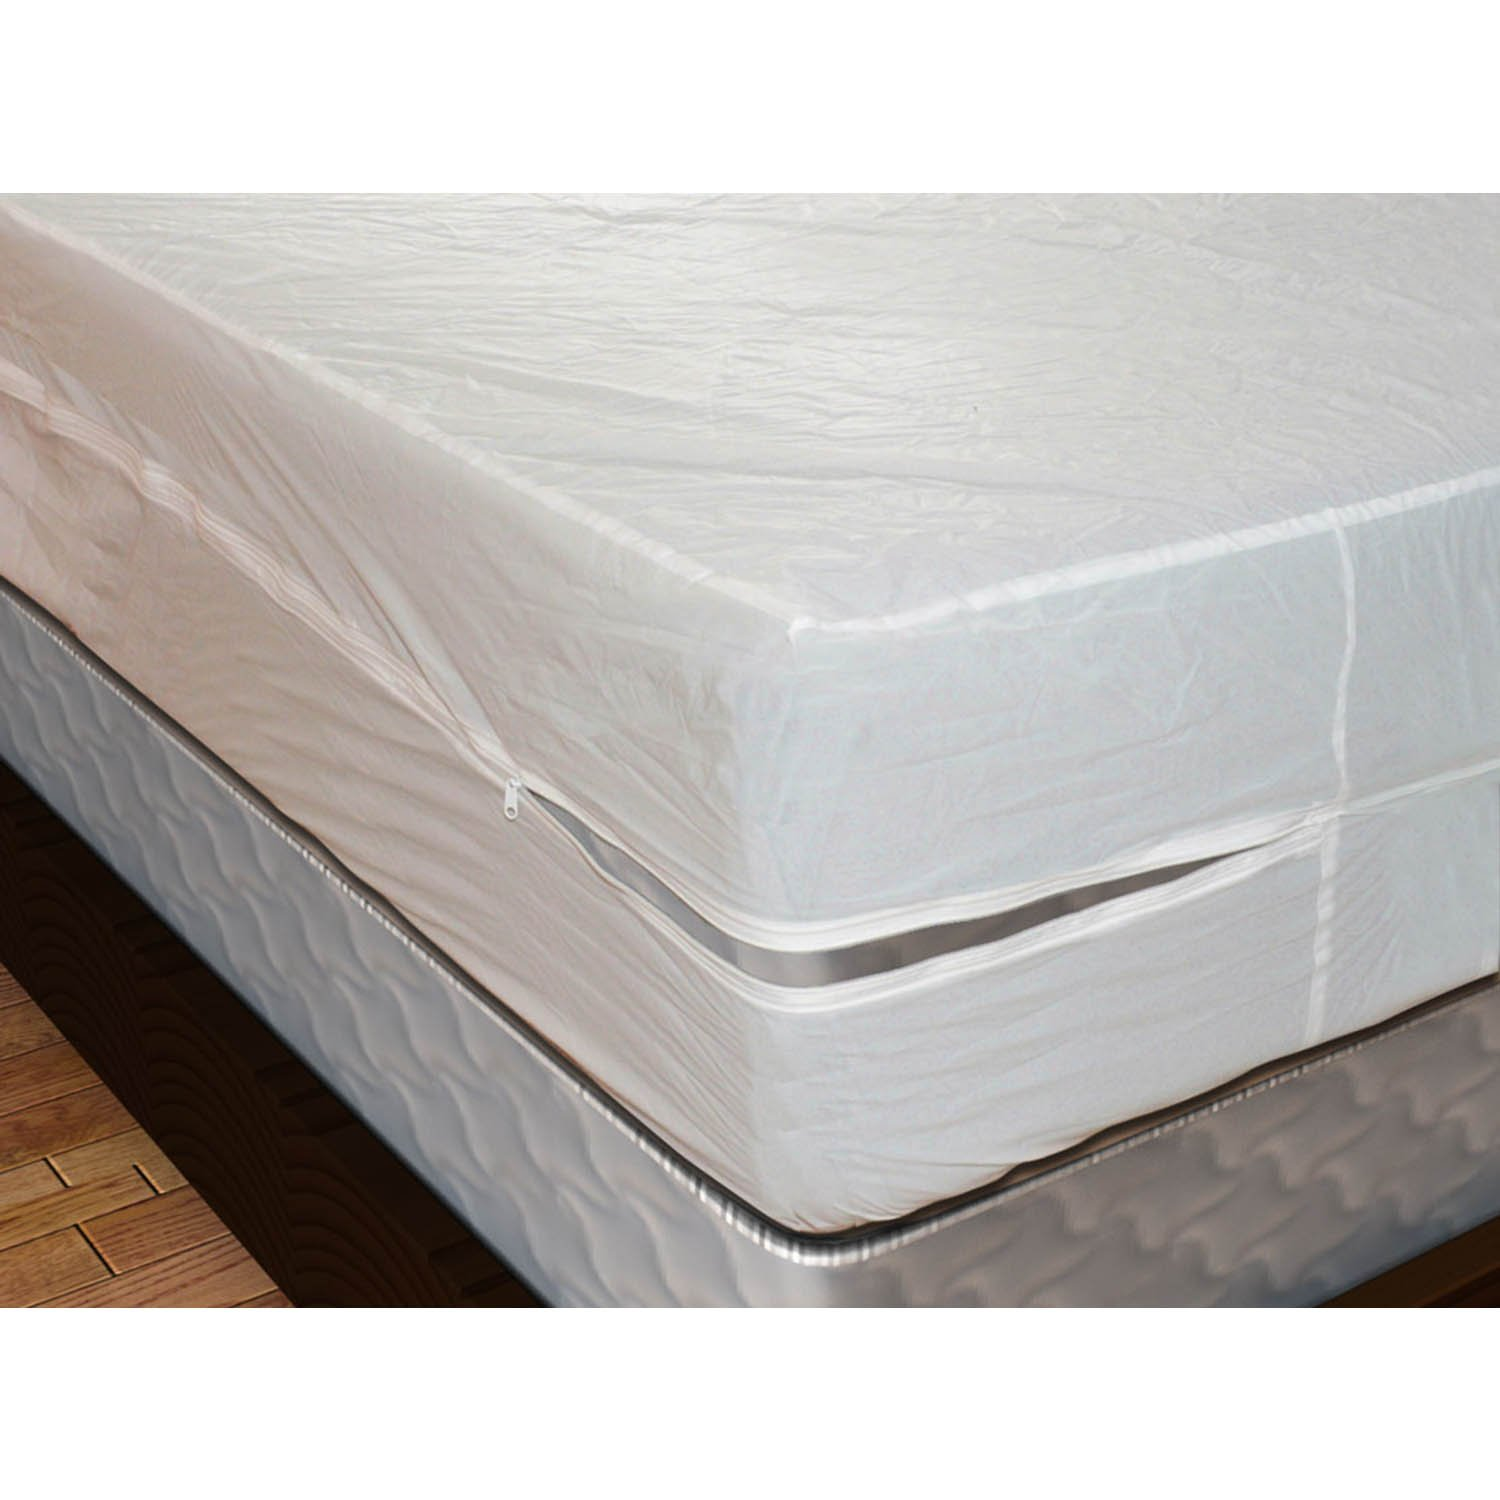 Shop Bedding Royal Mystique Vinyl Zippered Mattress Cover (Twin, 16